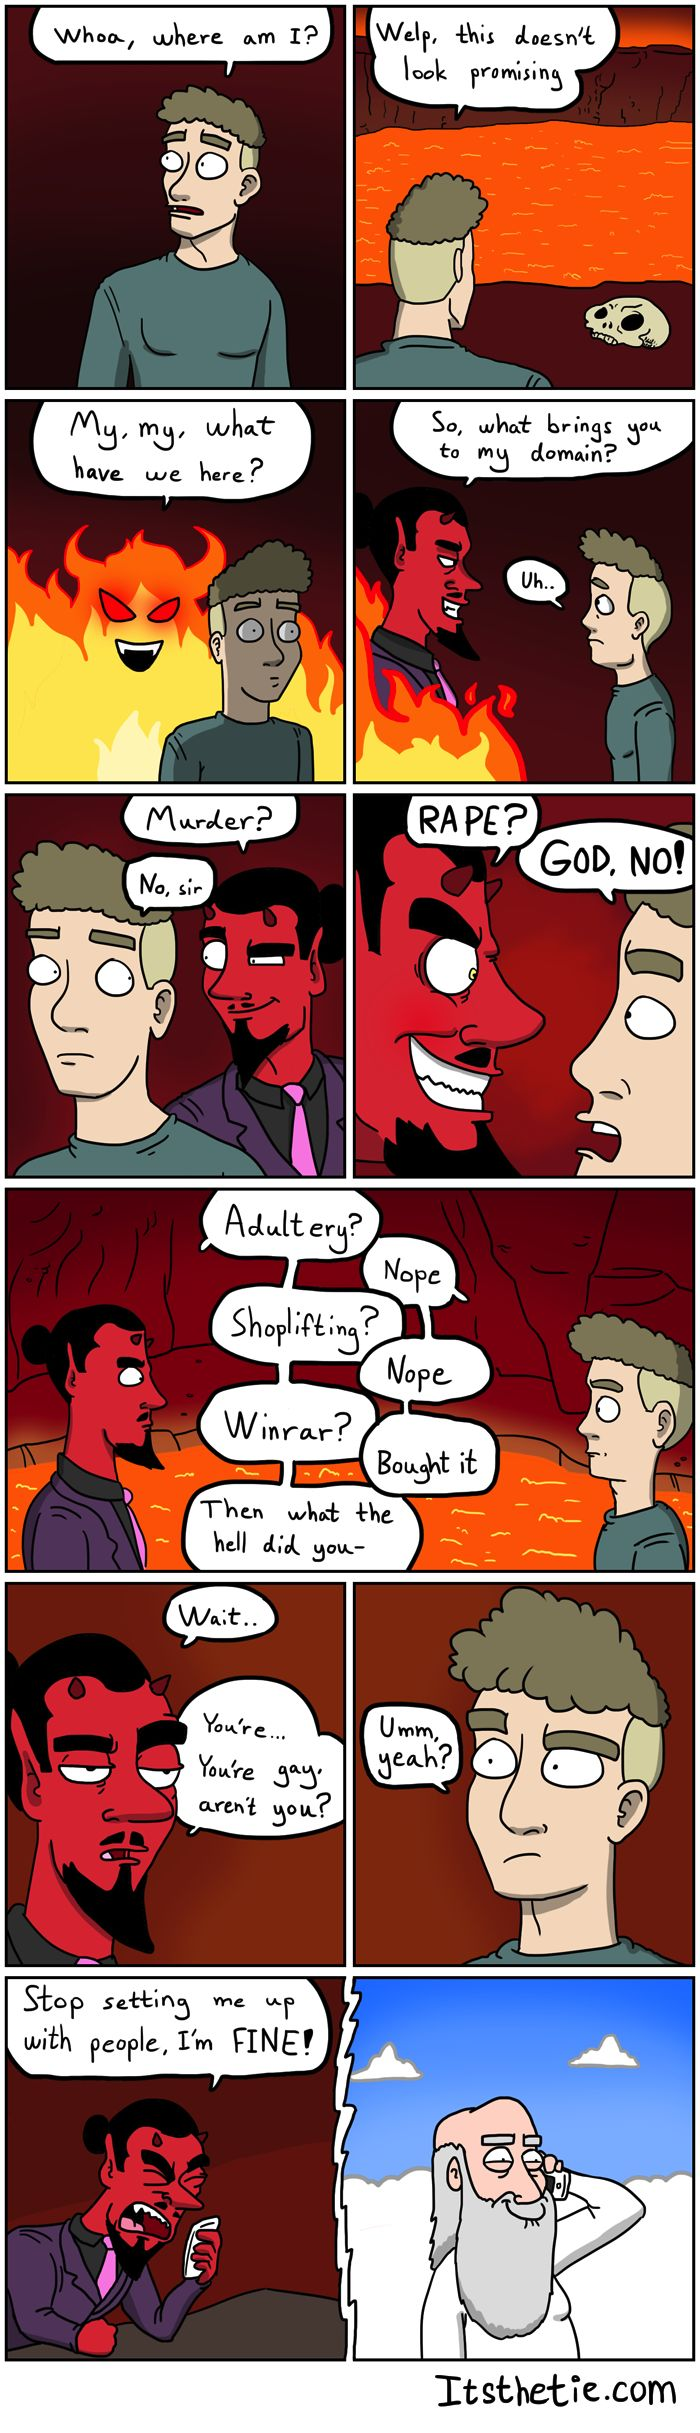 Going to Hell #funny #lol RePin if you liked this!